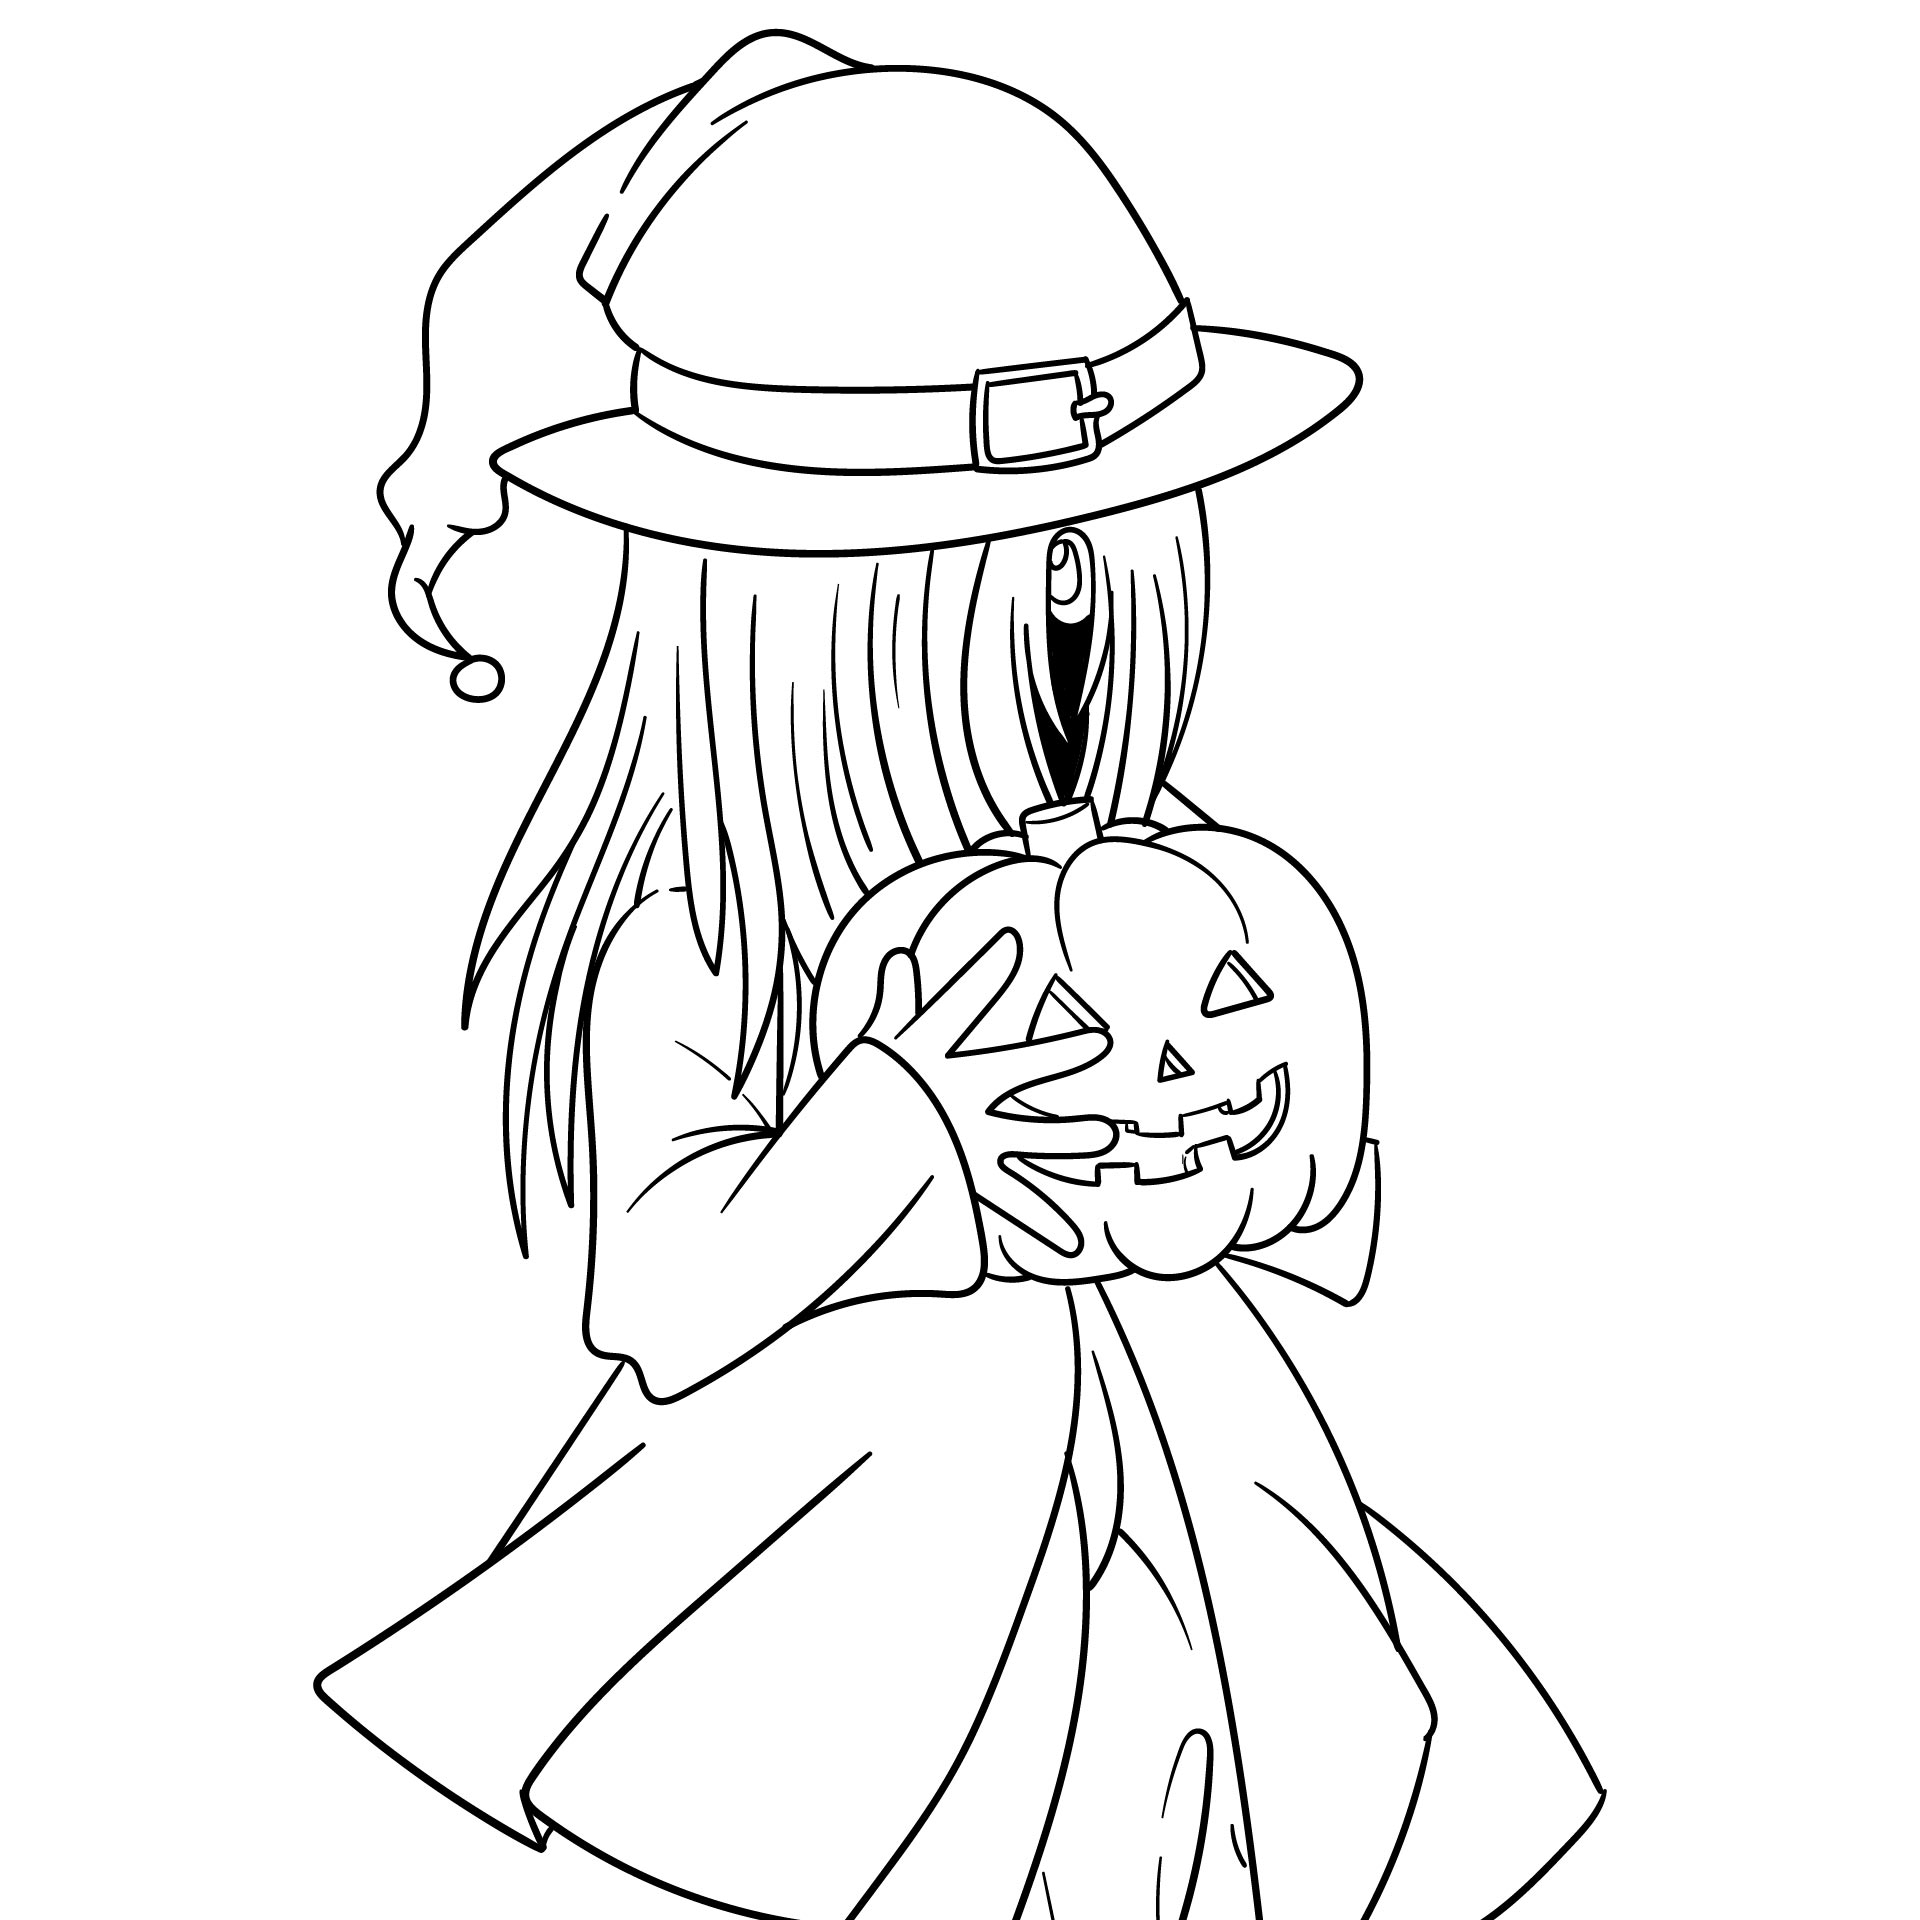 Printable Coloring Pages For Kids Halloween